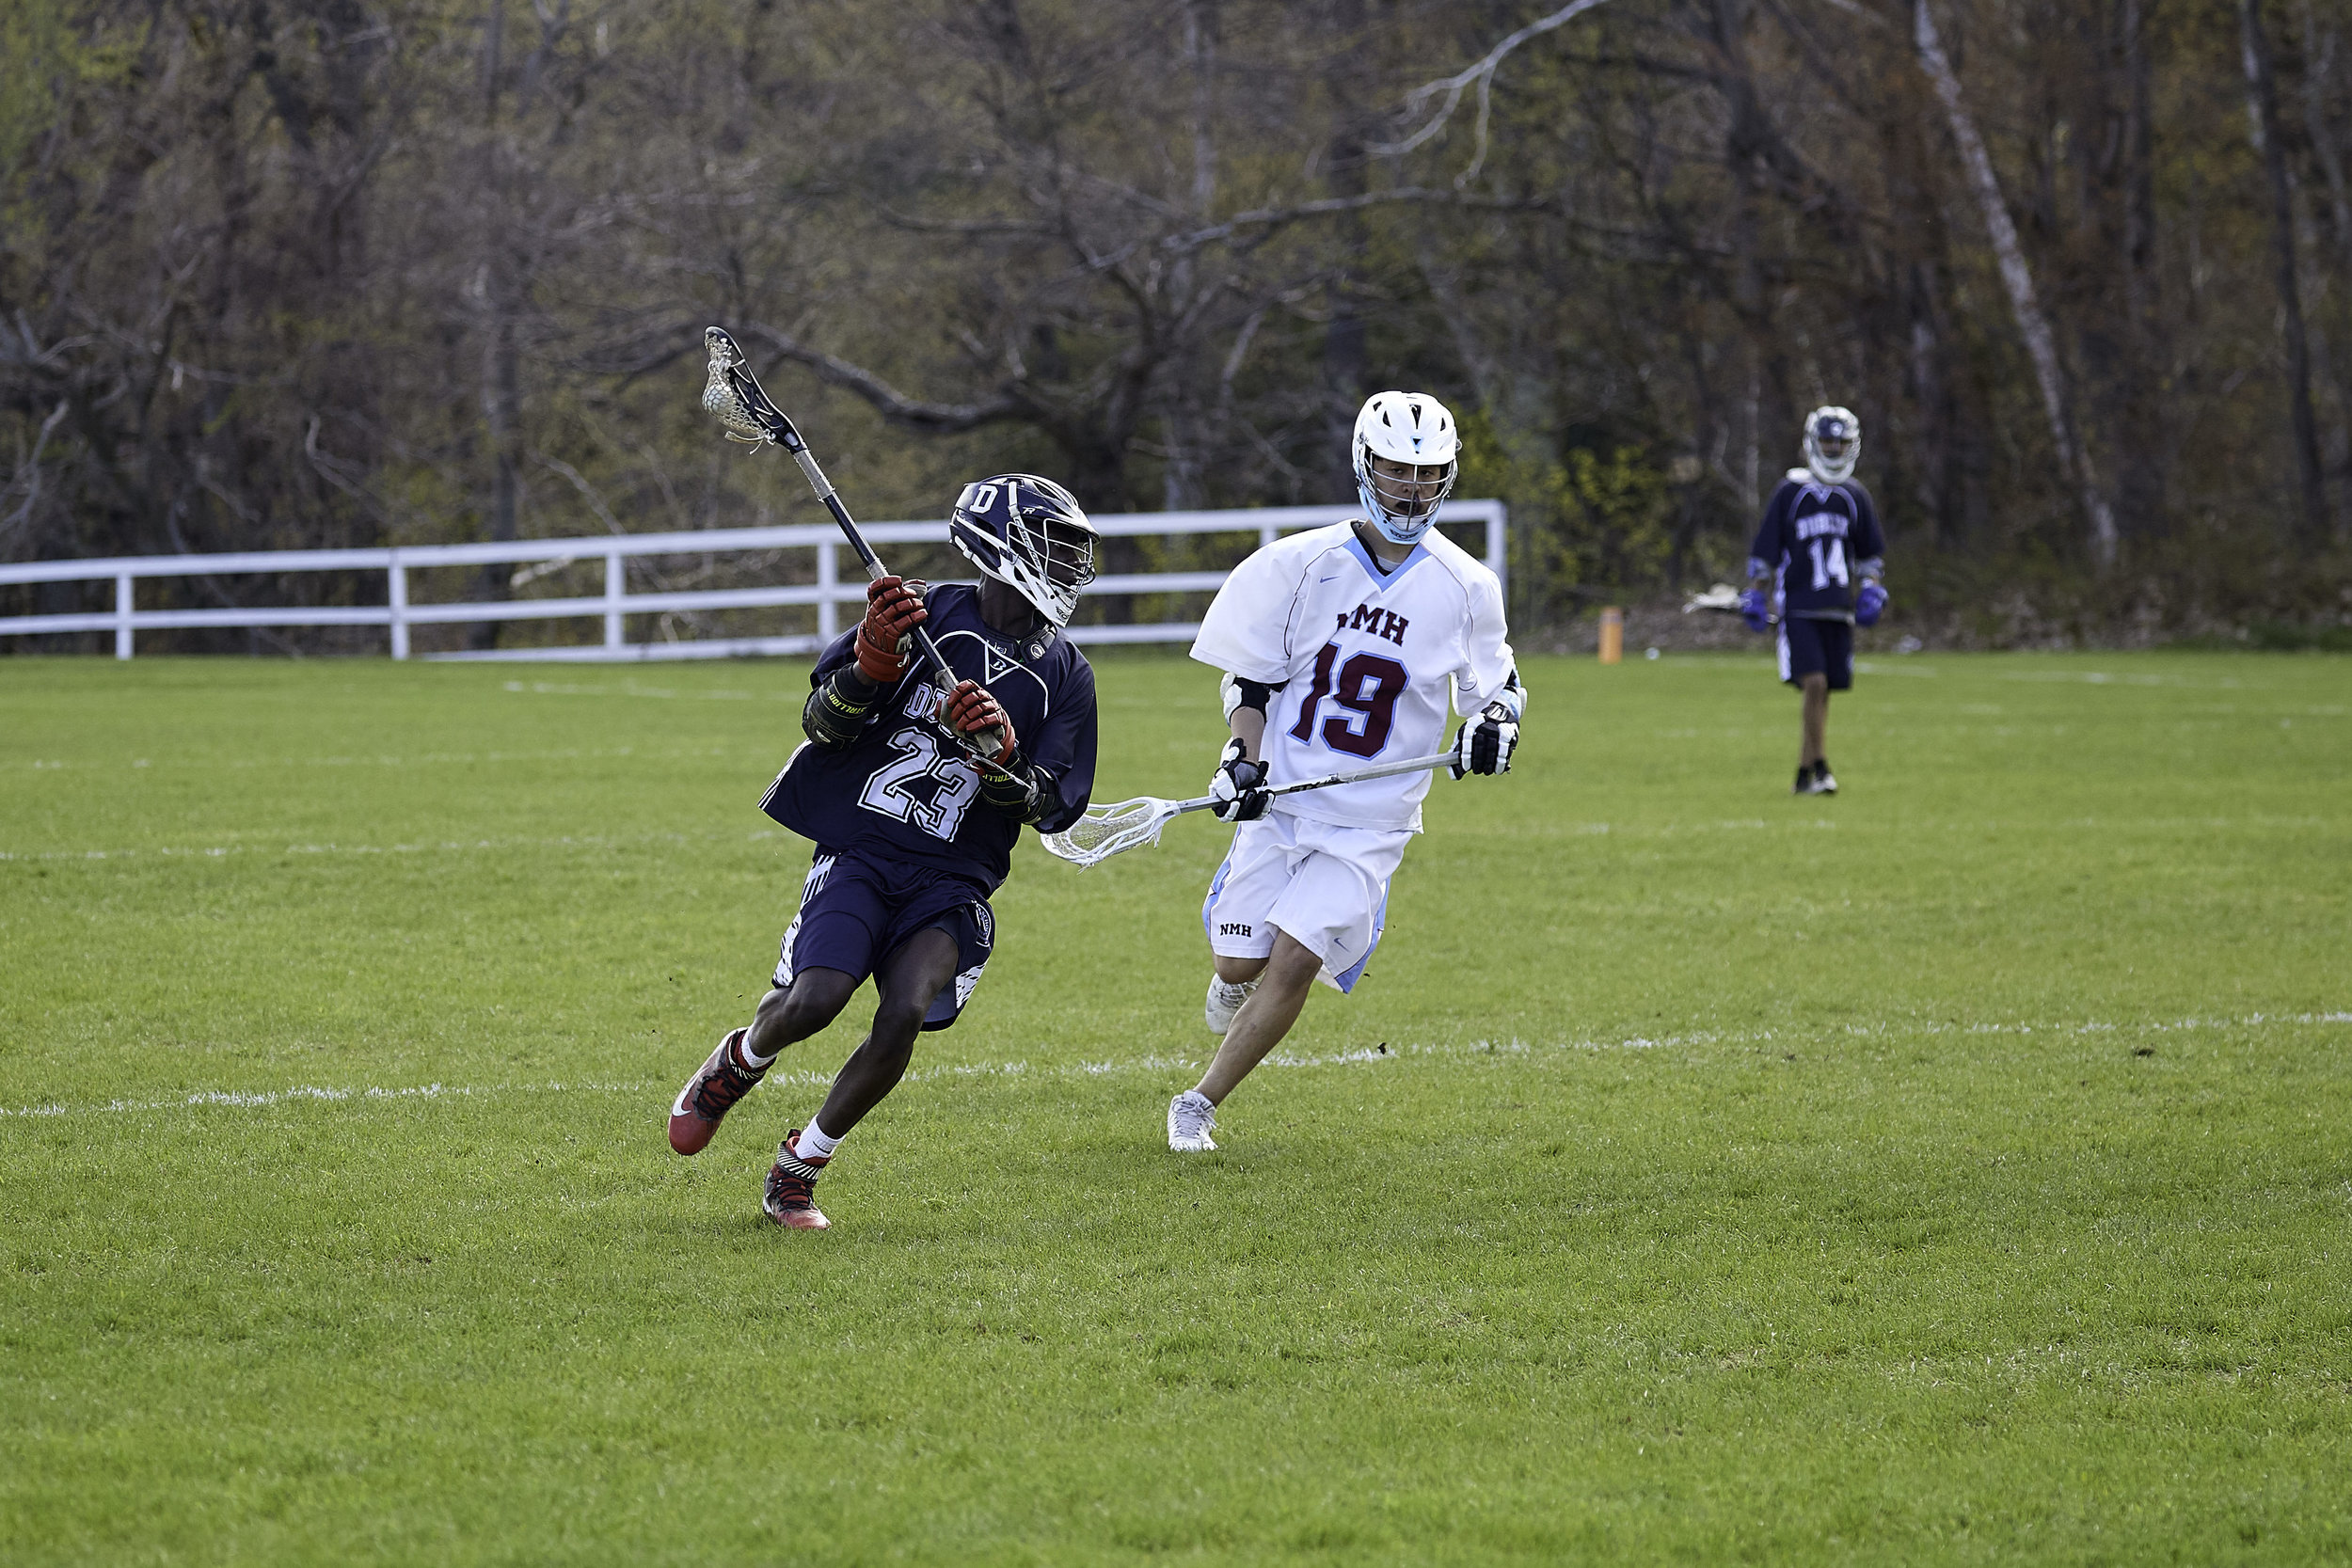 Boys Lax vs Northfield Mount Hermon JV - May 15 2019 - 0002.jpg